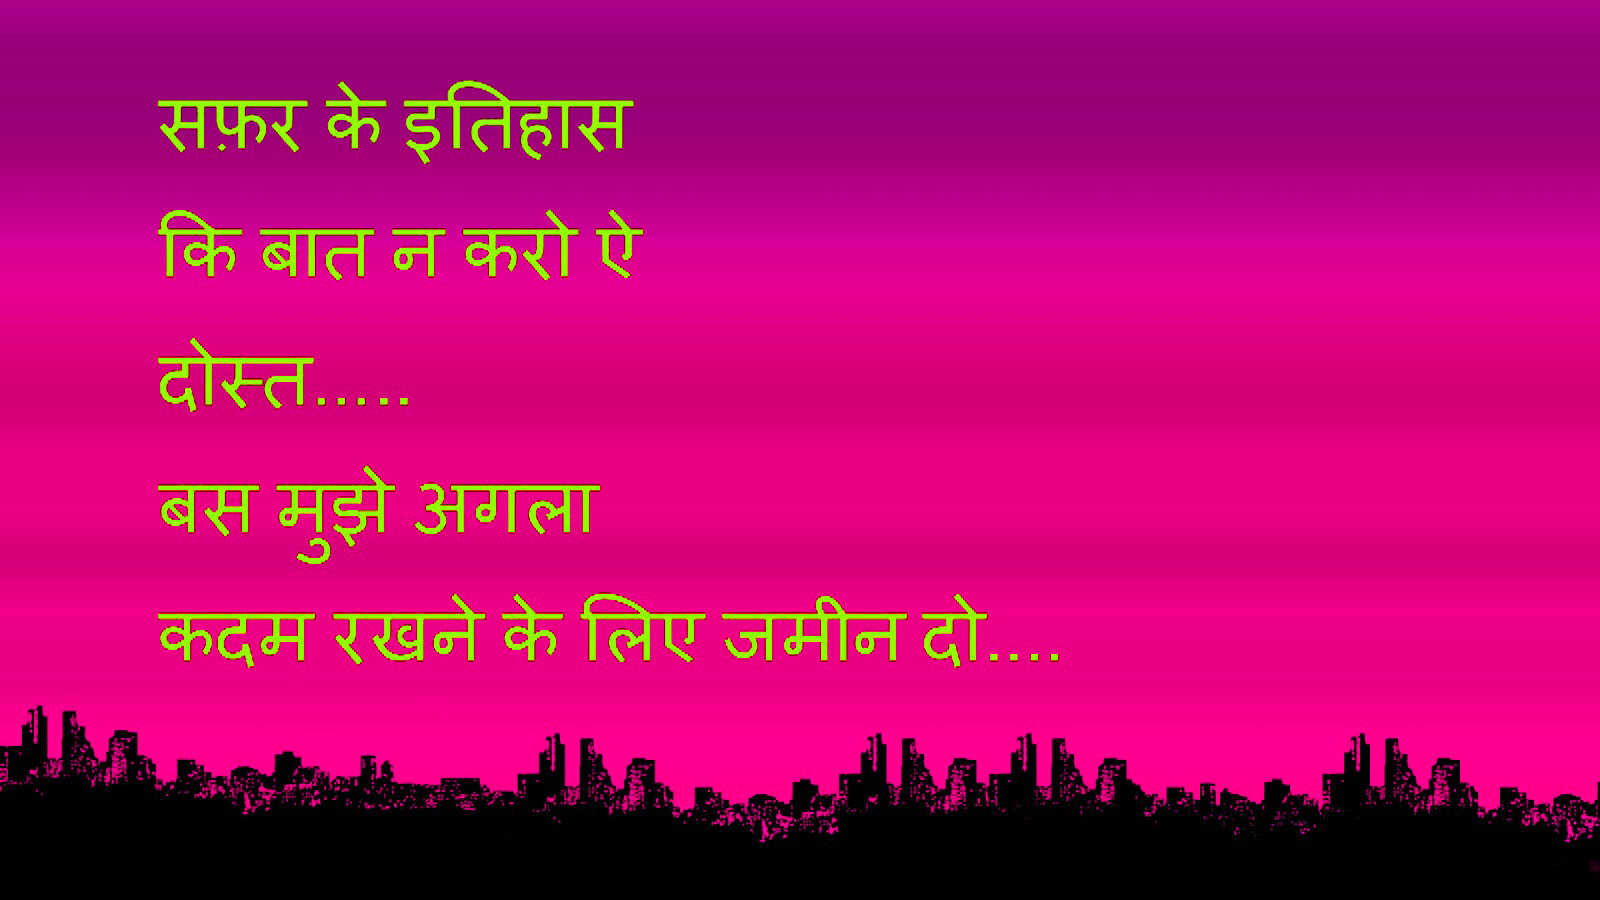 Hindi Sad Love Romantic Shayari Photo Wallpaper Download